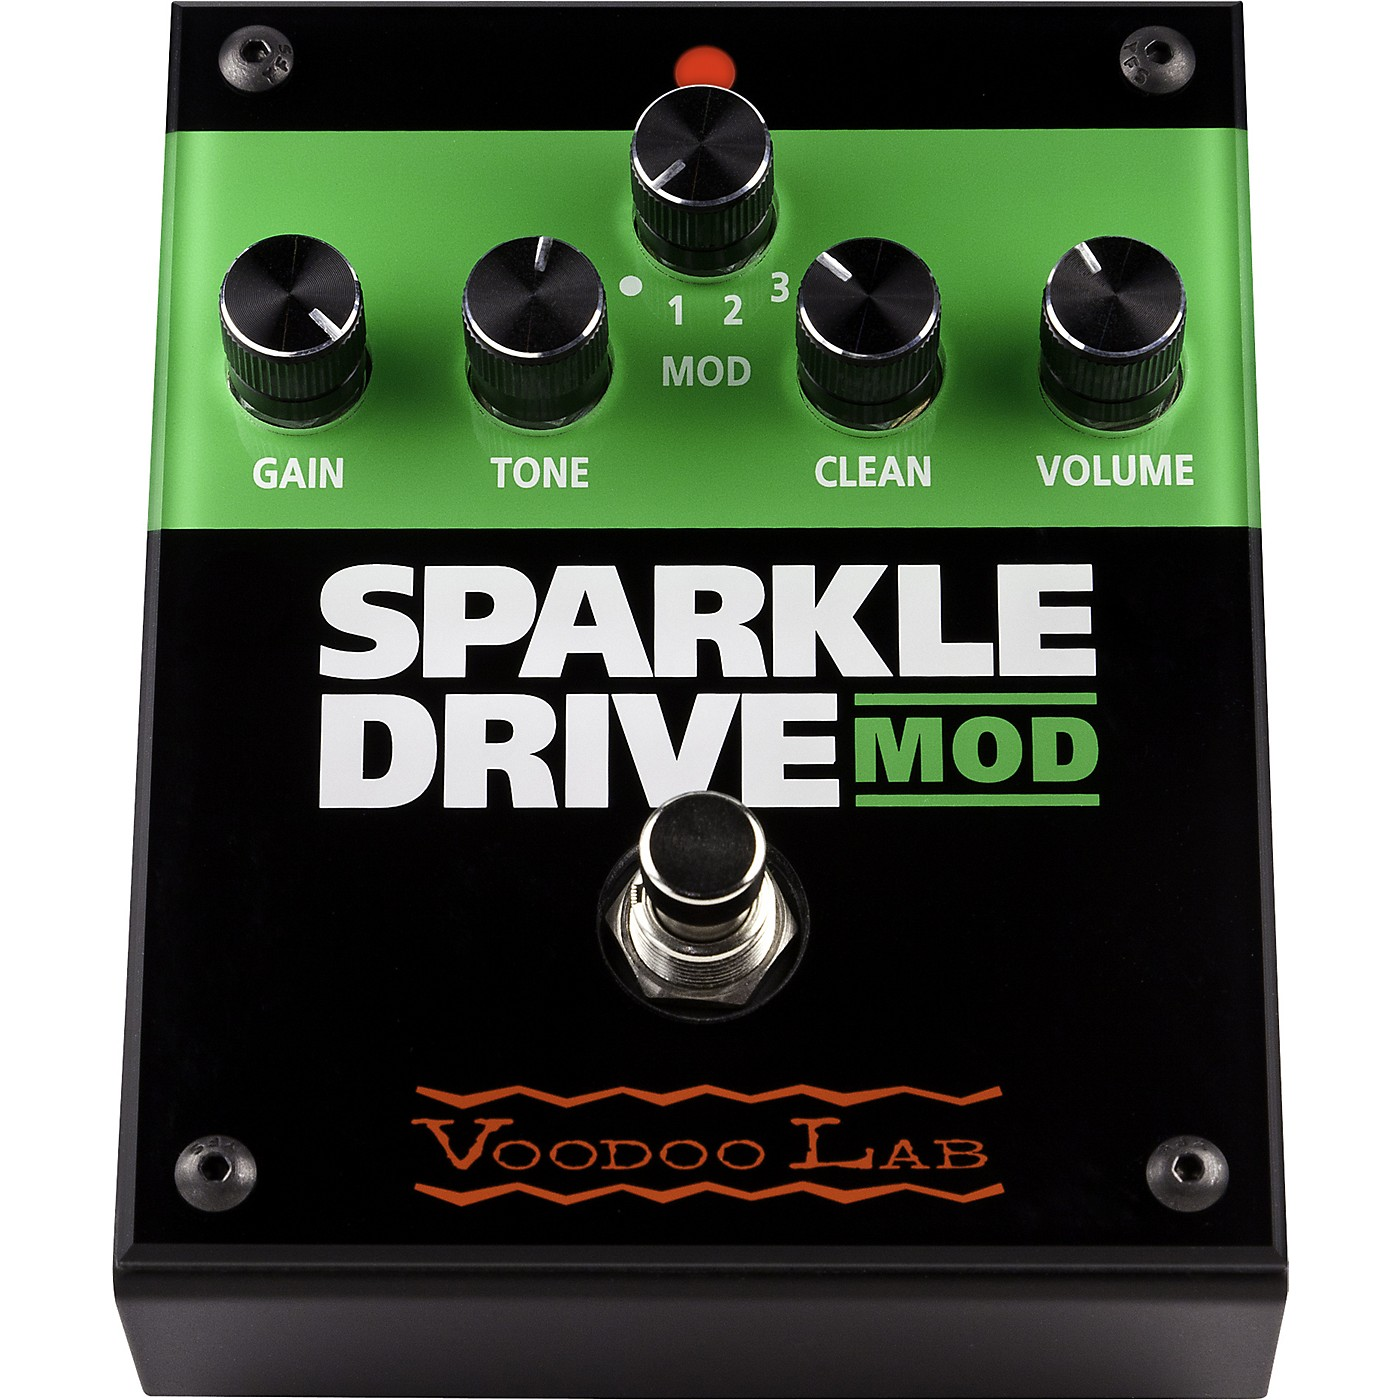 Voodoo Lab Sparkle Drive MOD Overdrive Guitar Effects Pedal thumbnail